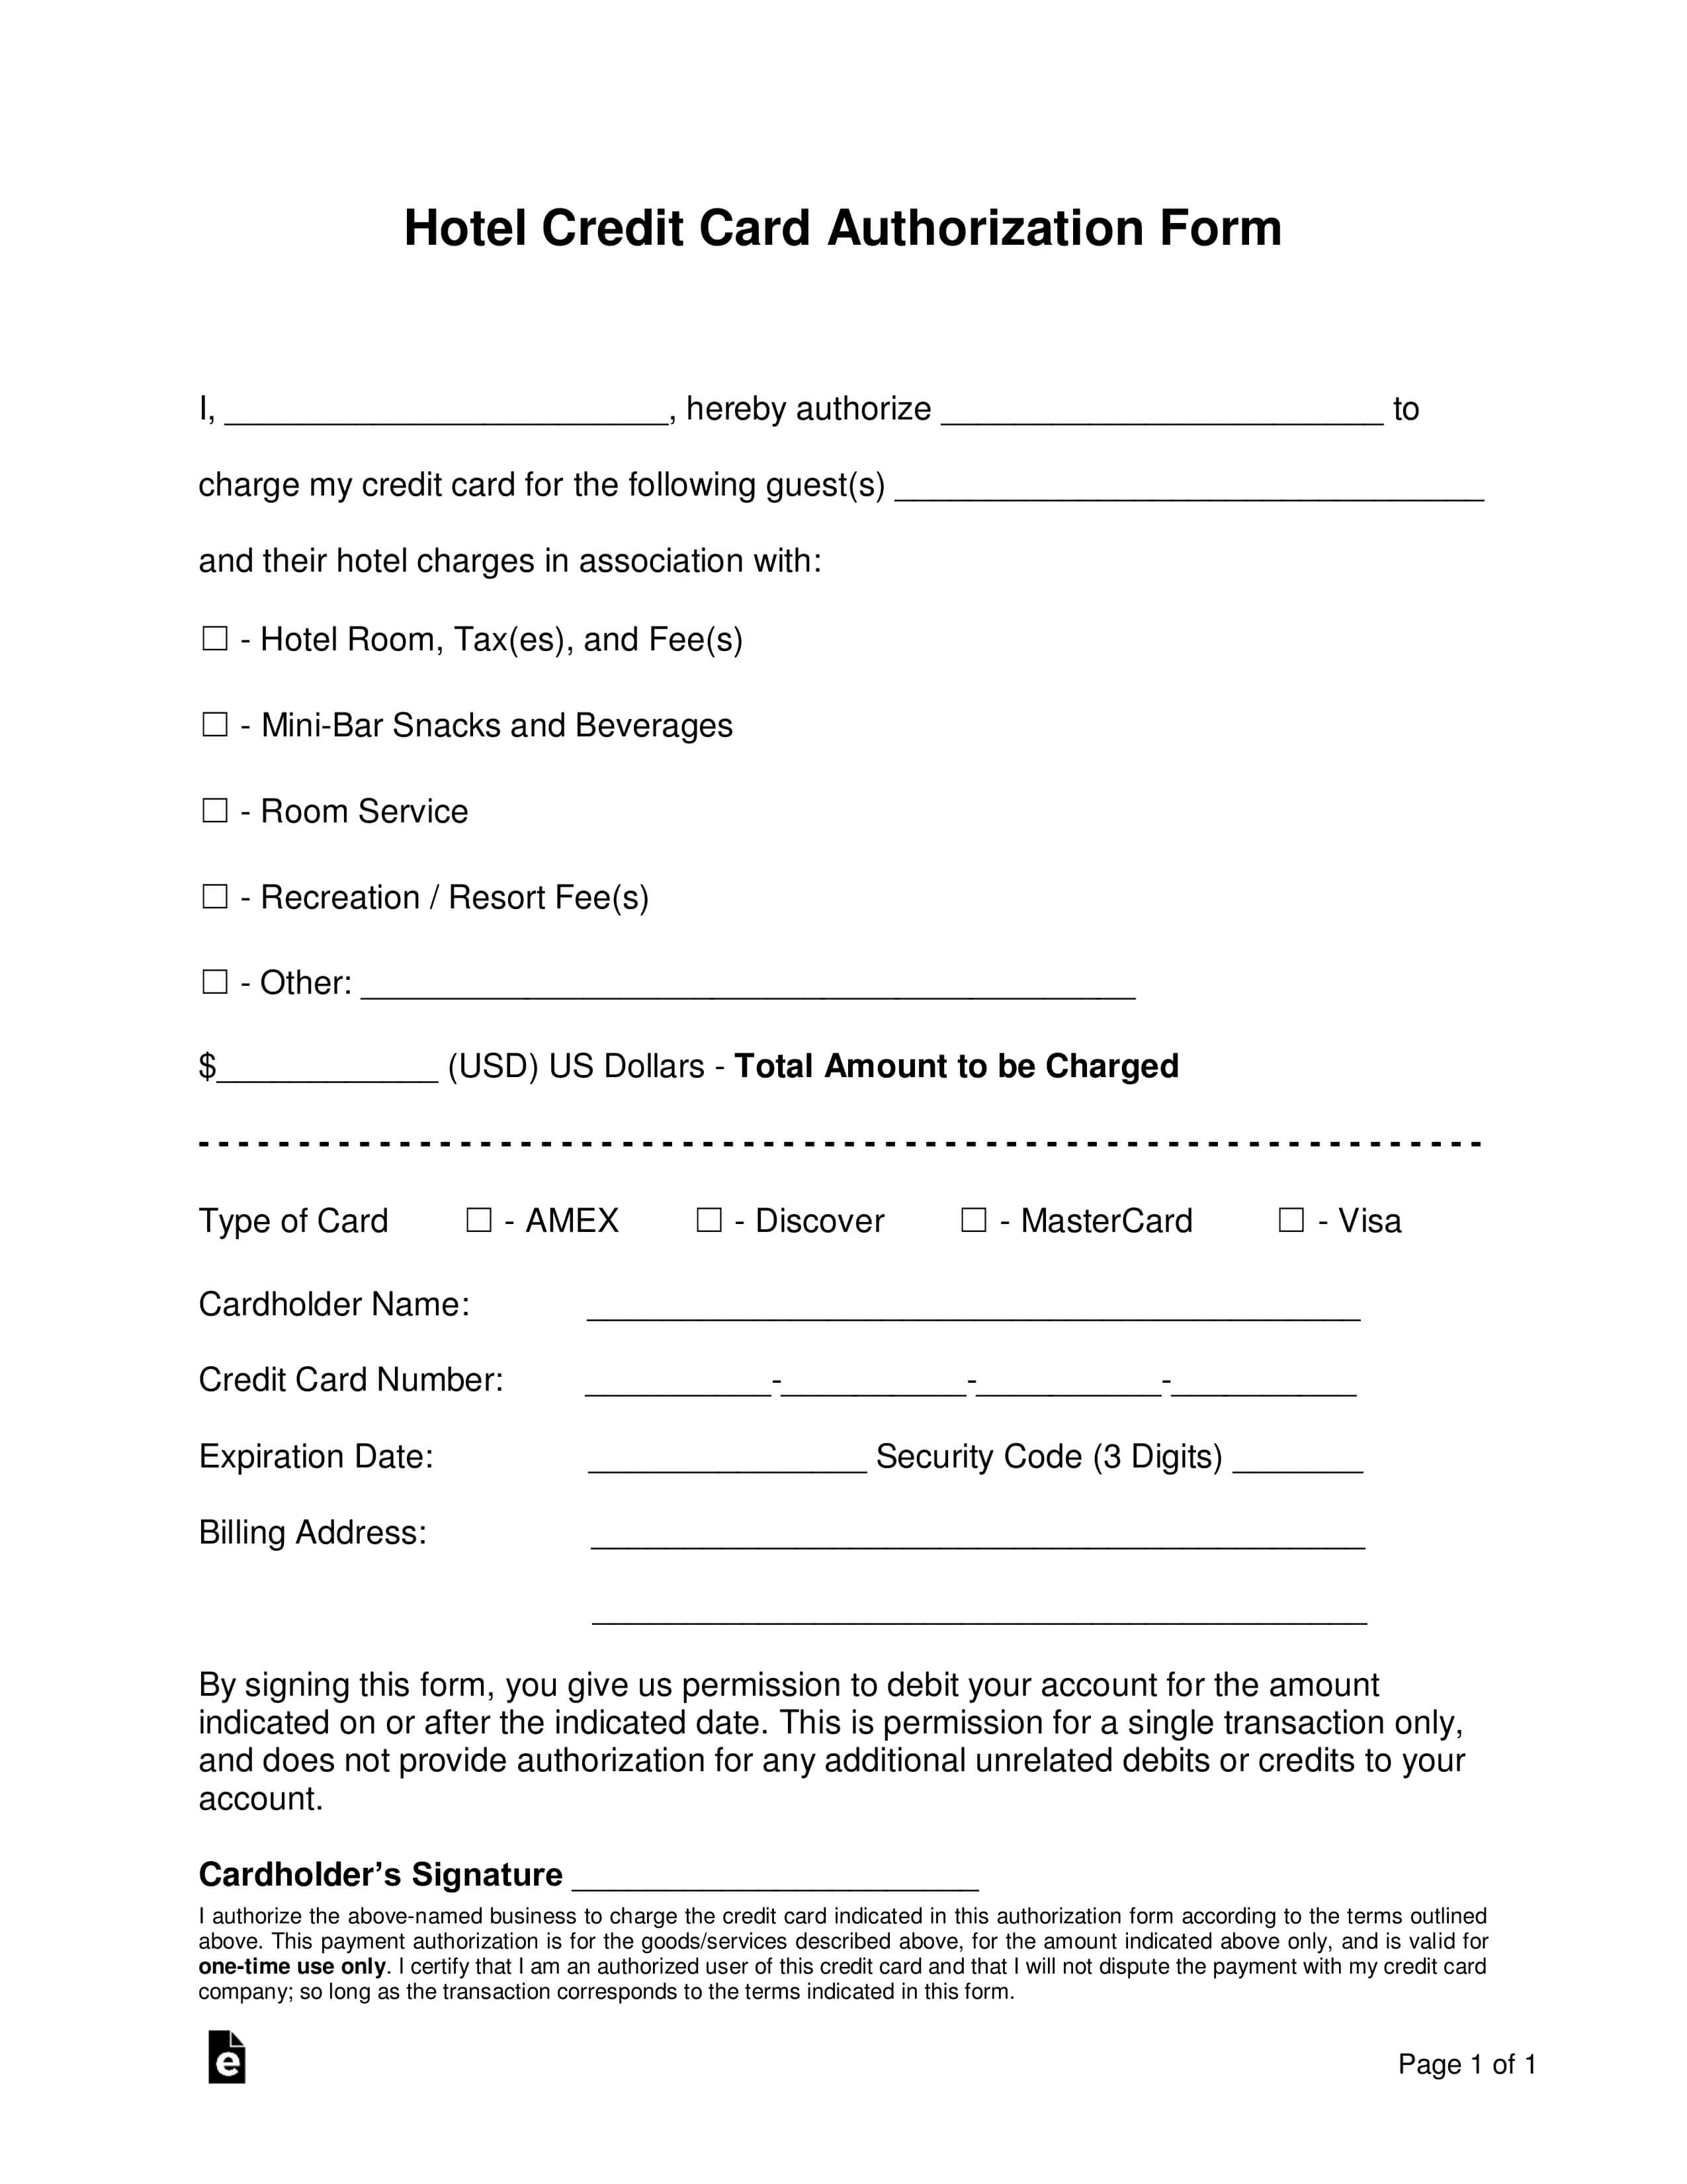 Free Hotel Credit Card Authorization Forms - Word | Pdf With Hotel Credit Card Authorization Form Template